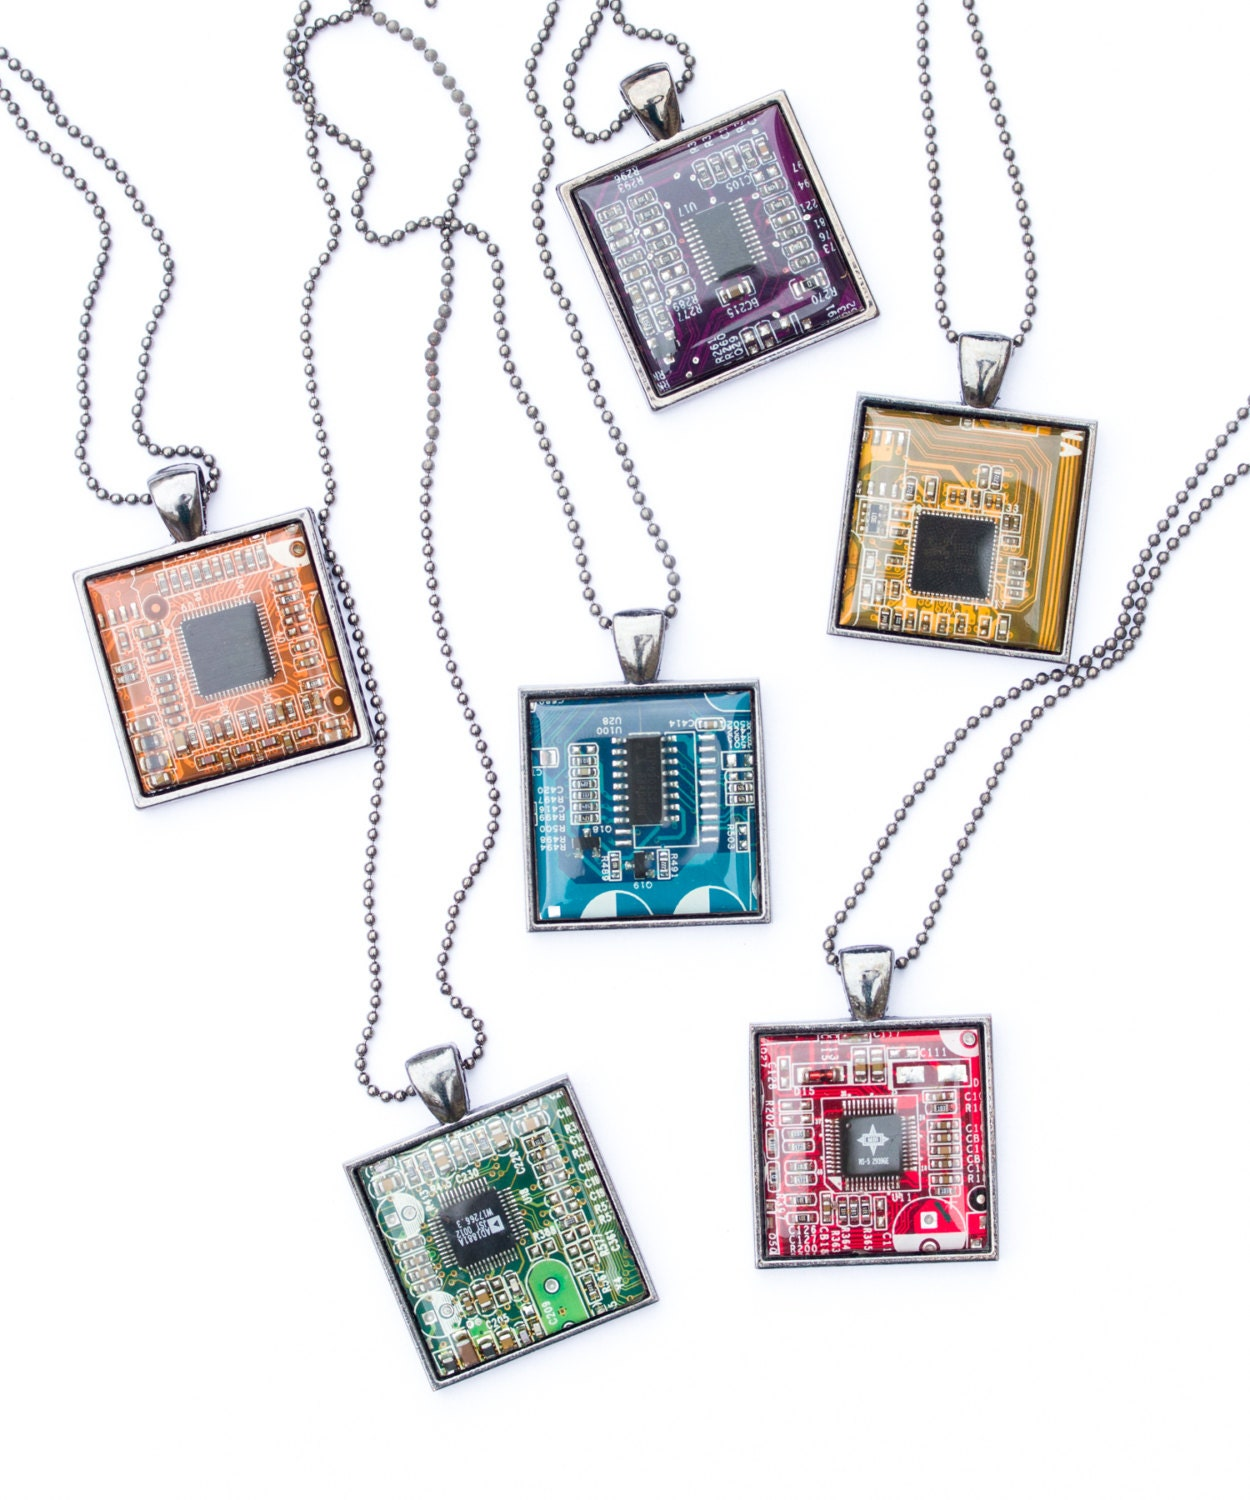 Techie Necklace Circuit Board Geeky Square Etsy Geekery Computer Nerd Green Upcycle Recycle